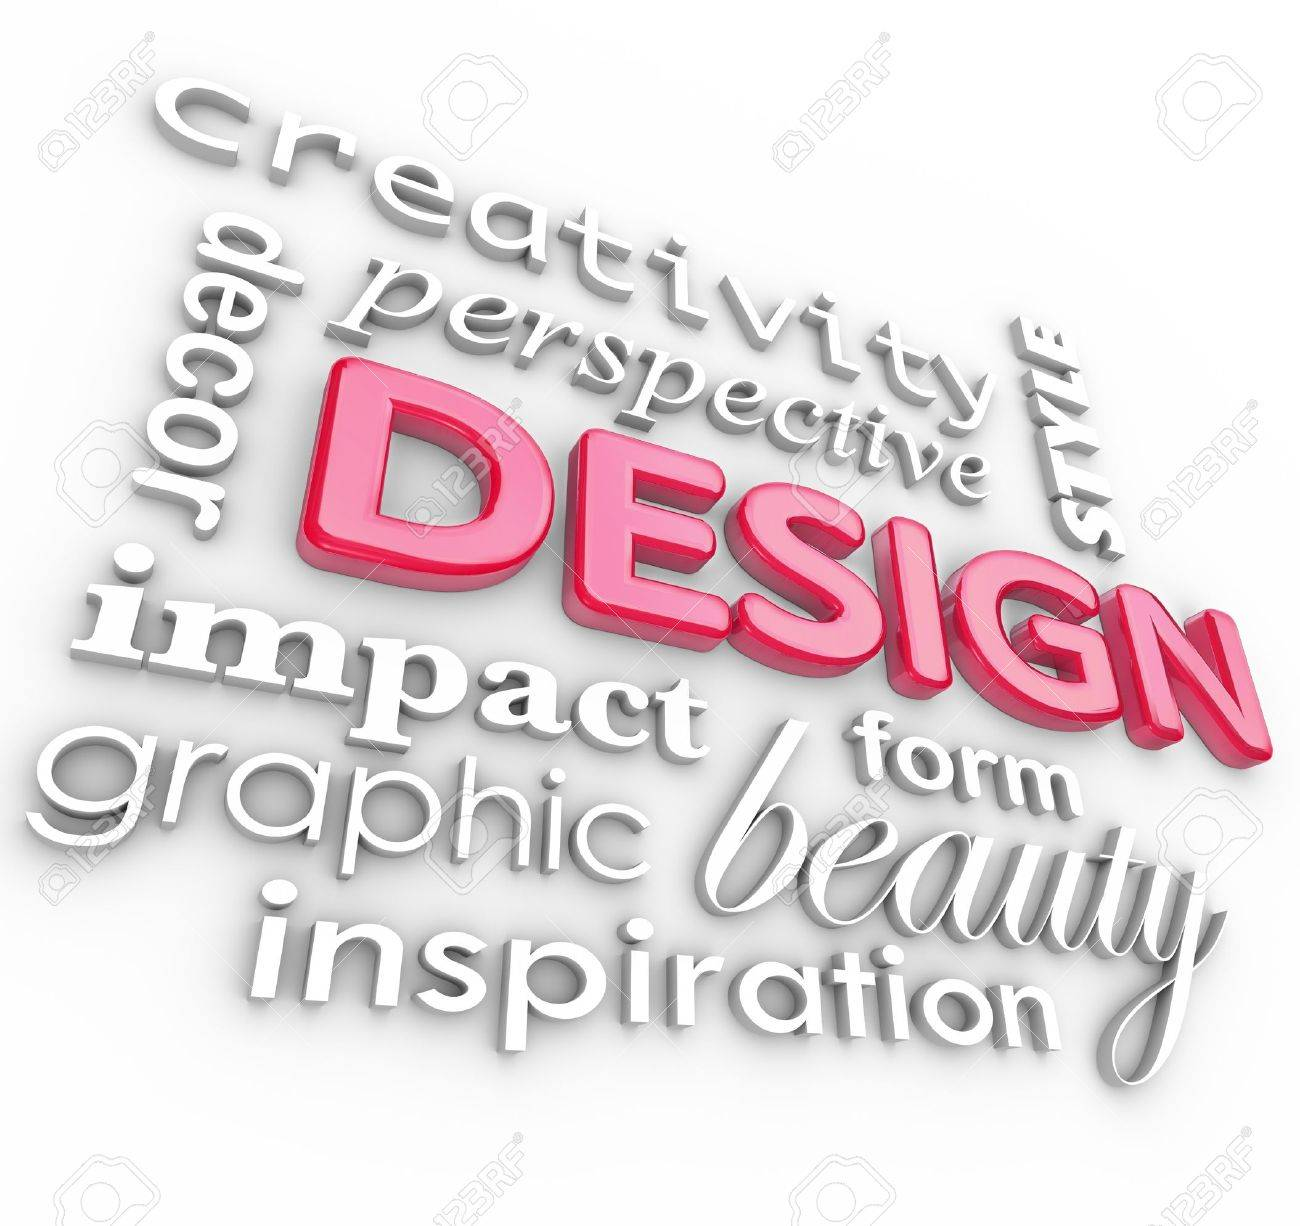 The word Design and related words in a collage representing creativity, beauty, inspiration, style, perspective and graphic designers, elements of an artistic profession Stock Photo - 14363412